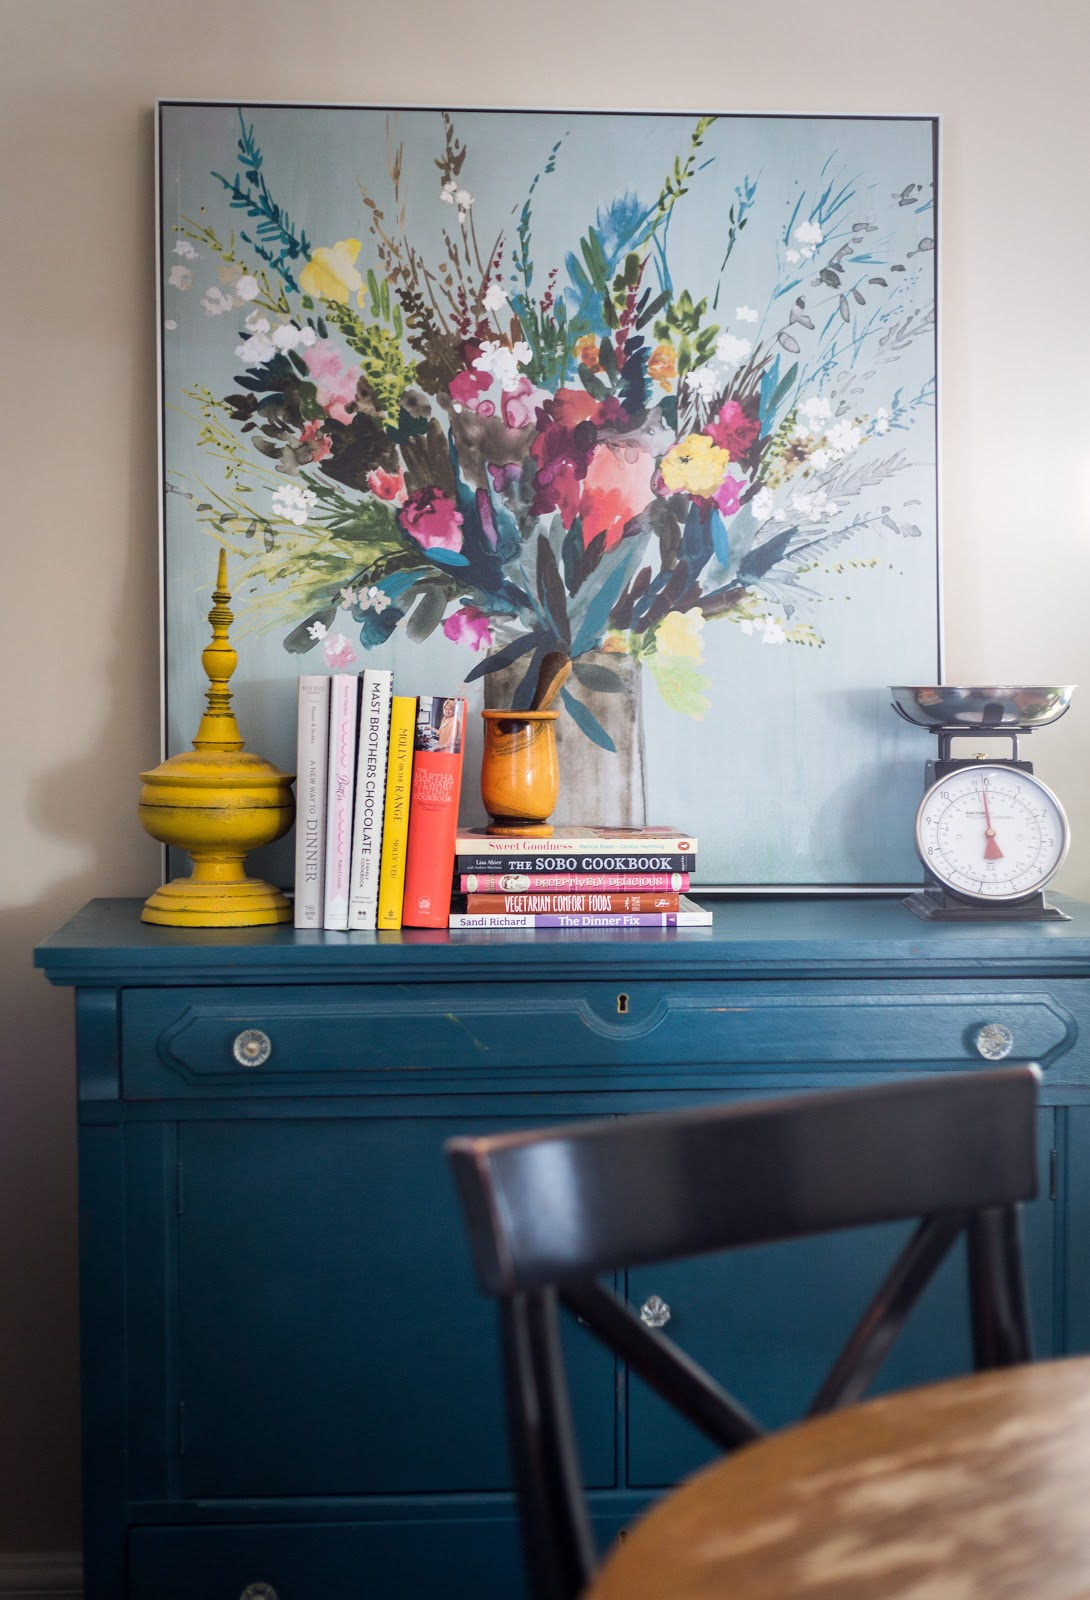 art travel finds and books from abroad displayed vignette blue cabinet calgary interior design leanne bunnell